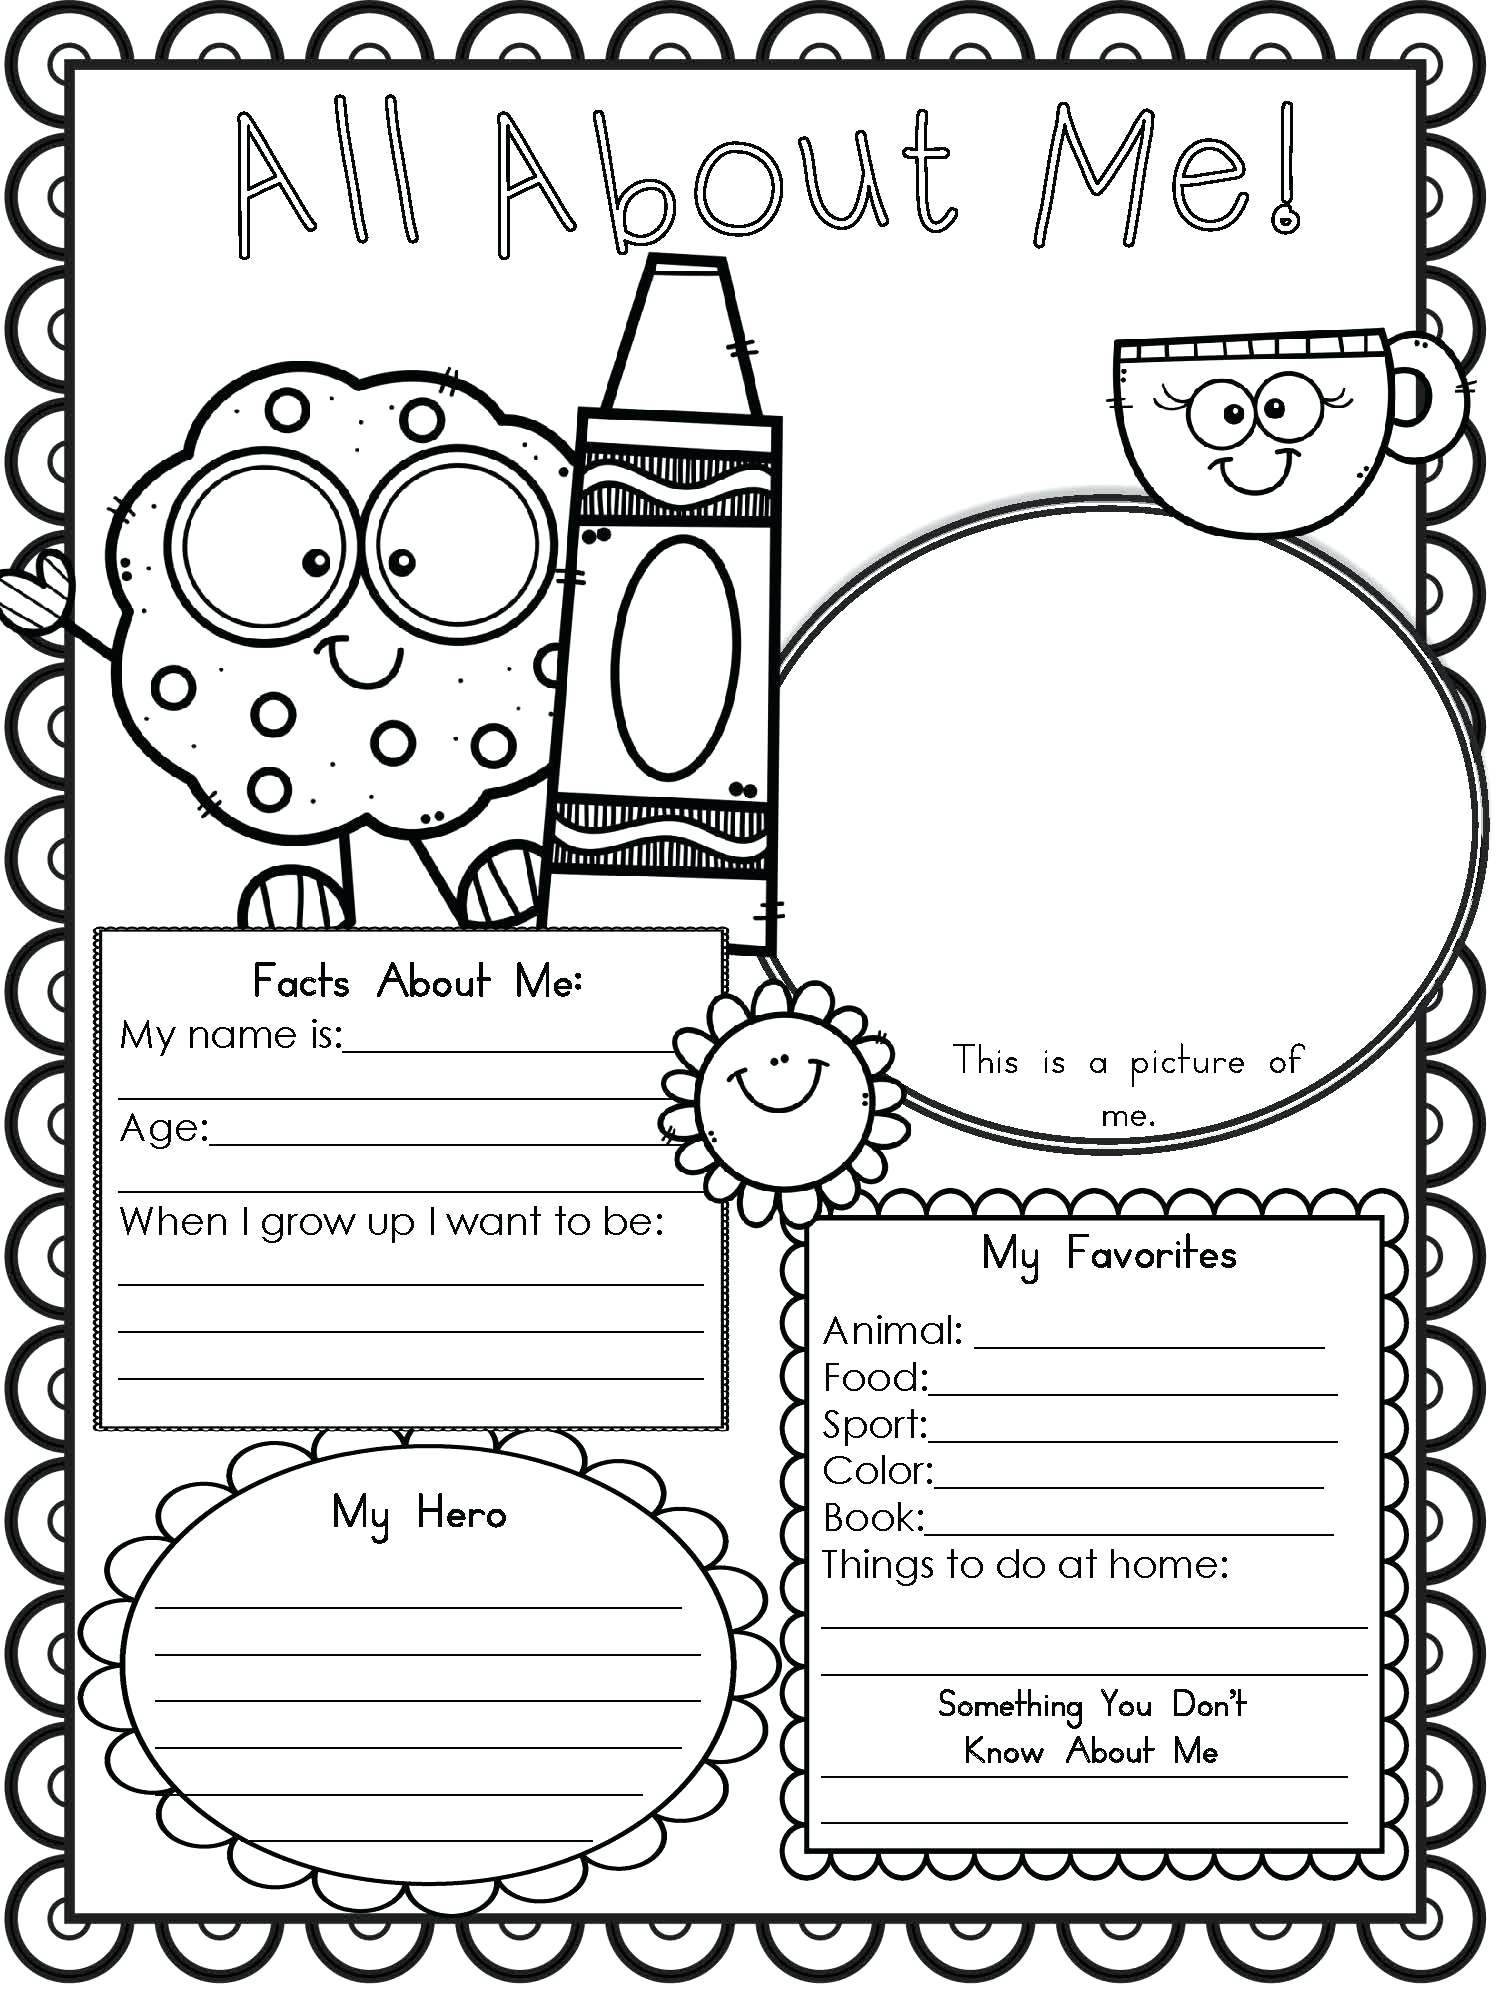 Act Prep Math Worksheets Pdf Birthday Preschool Worksheet Printable Worksheets and Prek